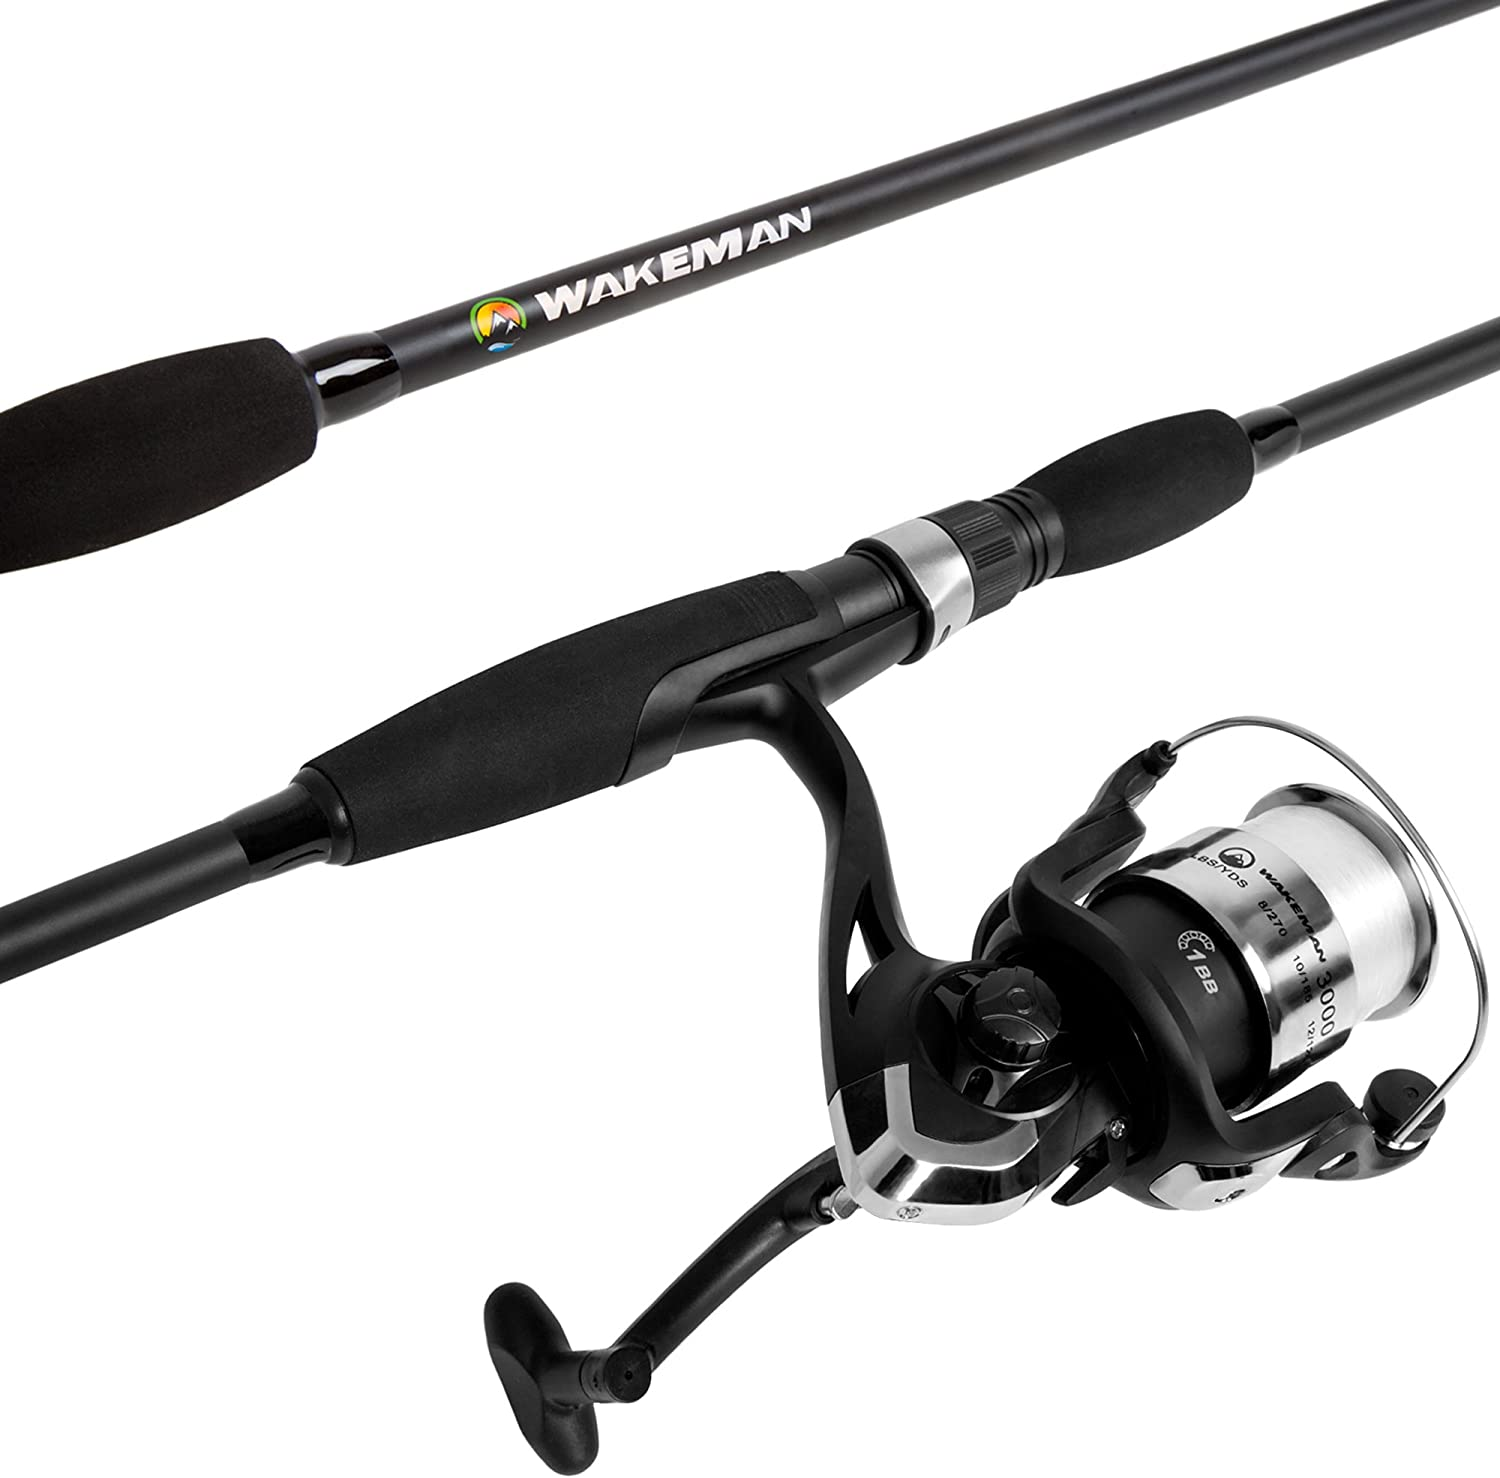 Amazon Com Wakeman Fishing Strike Series Spinning Rod And Reel Blackout Combo Length 78 Inches Reel Width 5 75 Inches Reel Height 5 Inches Clothing